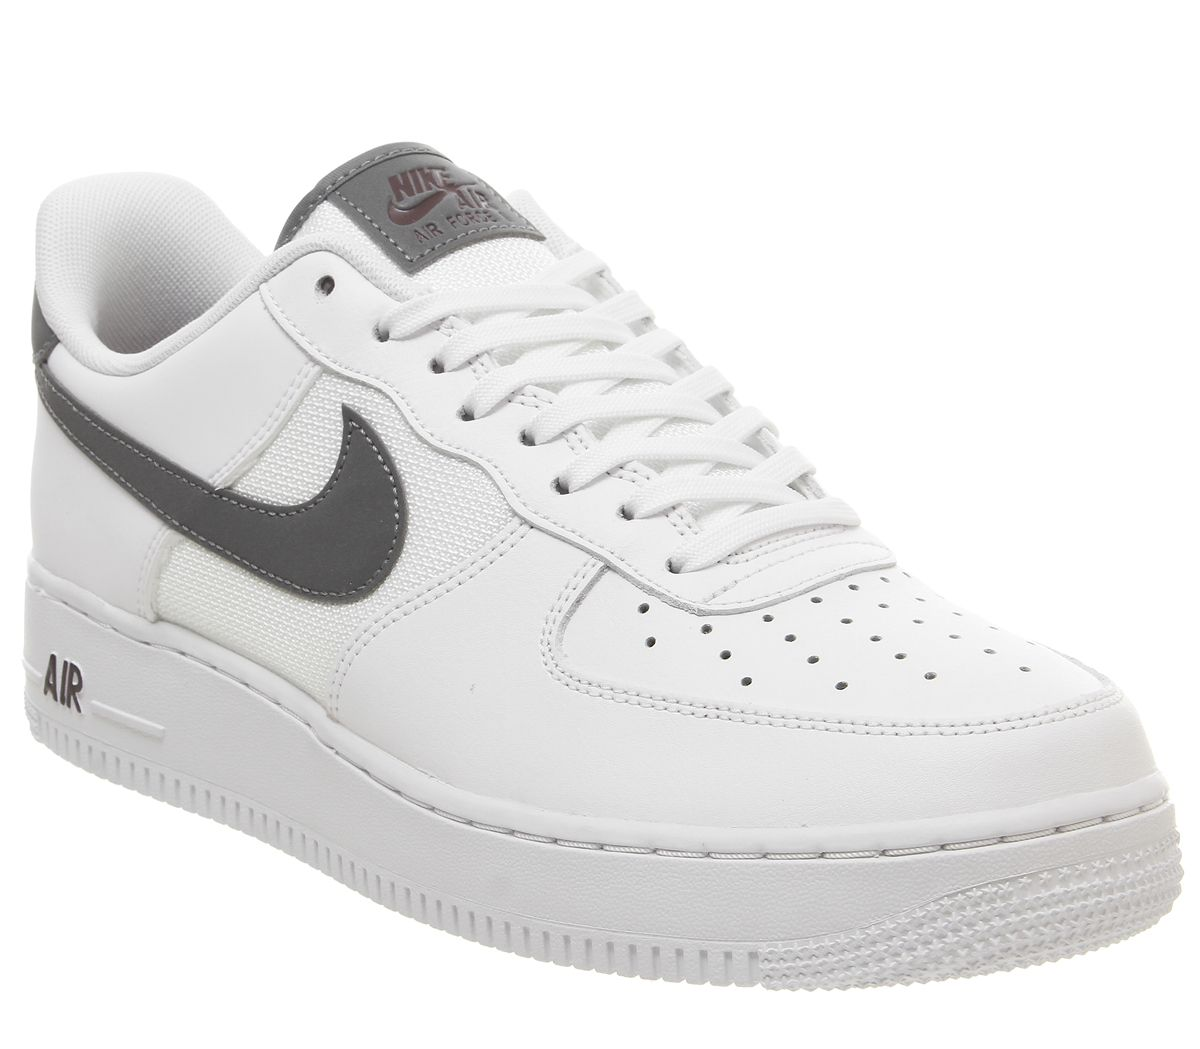 new styles c40c9 d4c40 Nike Air Force 1 07 Trainers White Cool Grey Night Maroon - His trainers